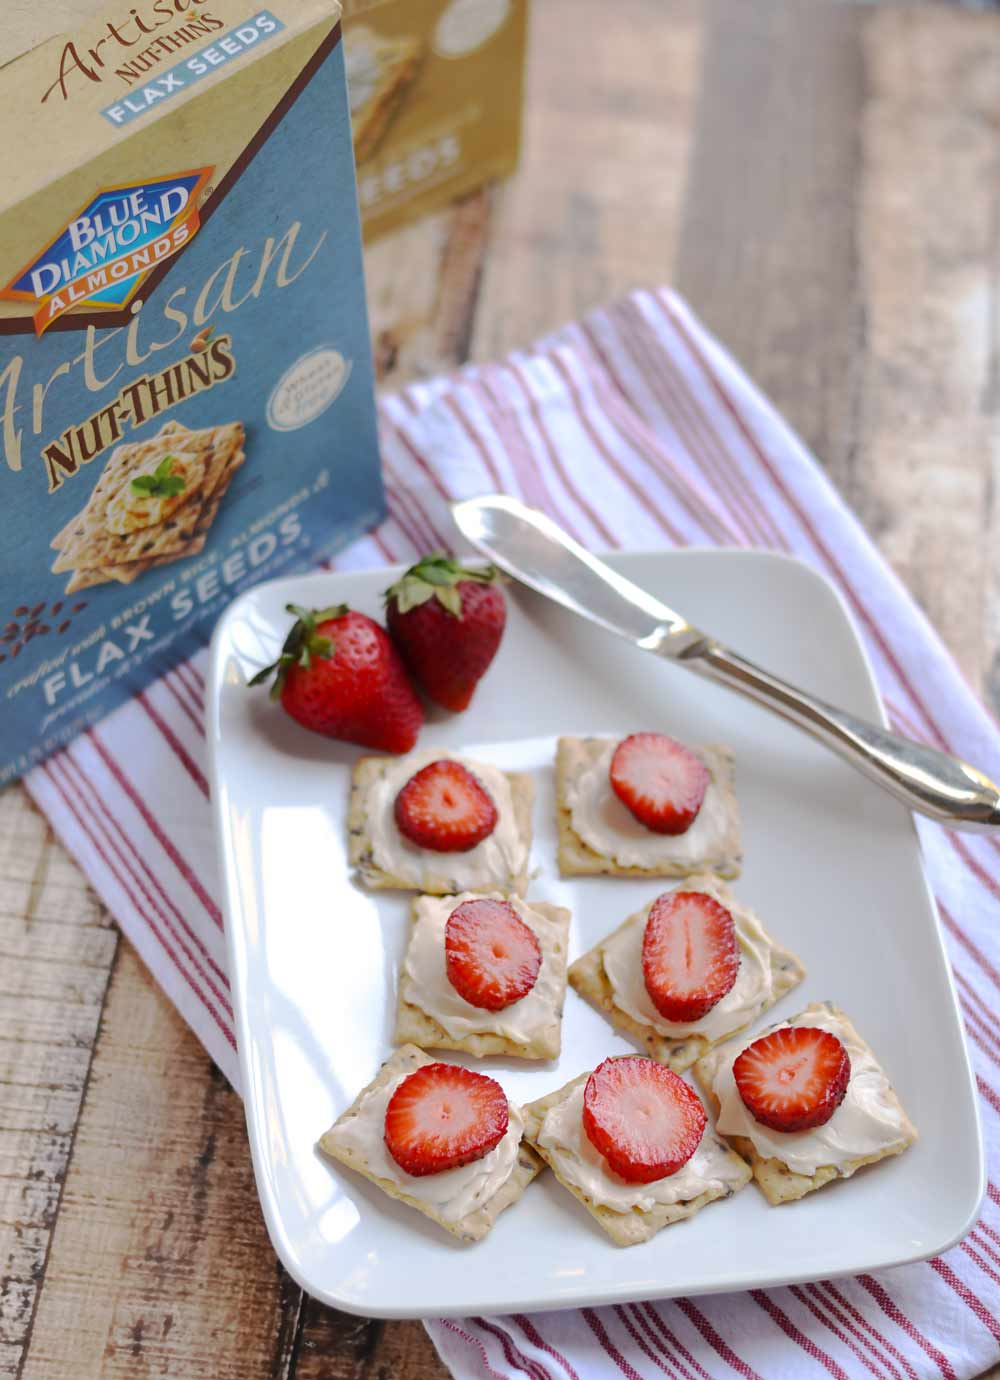 Blue Diamond Artisan Nut Thins | APinchOfHealthy.com